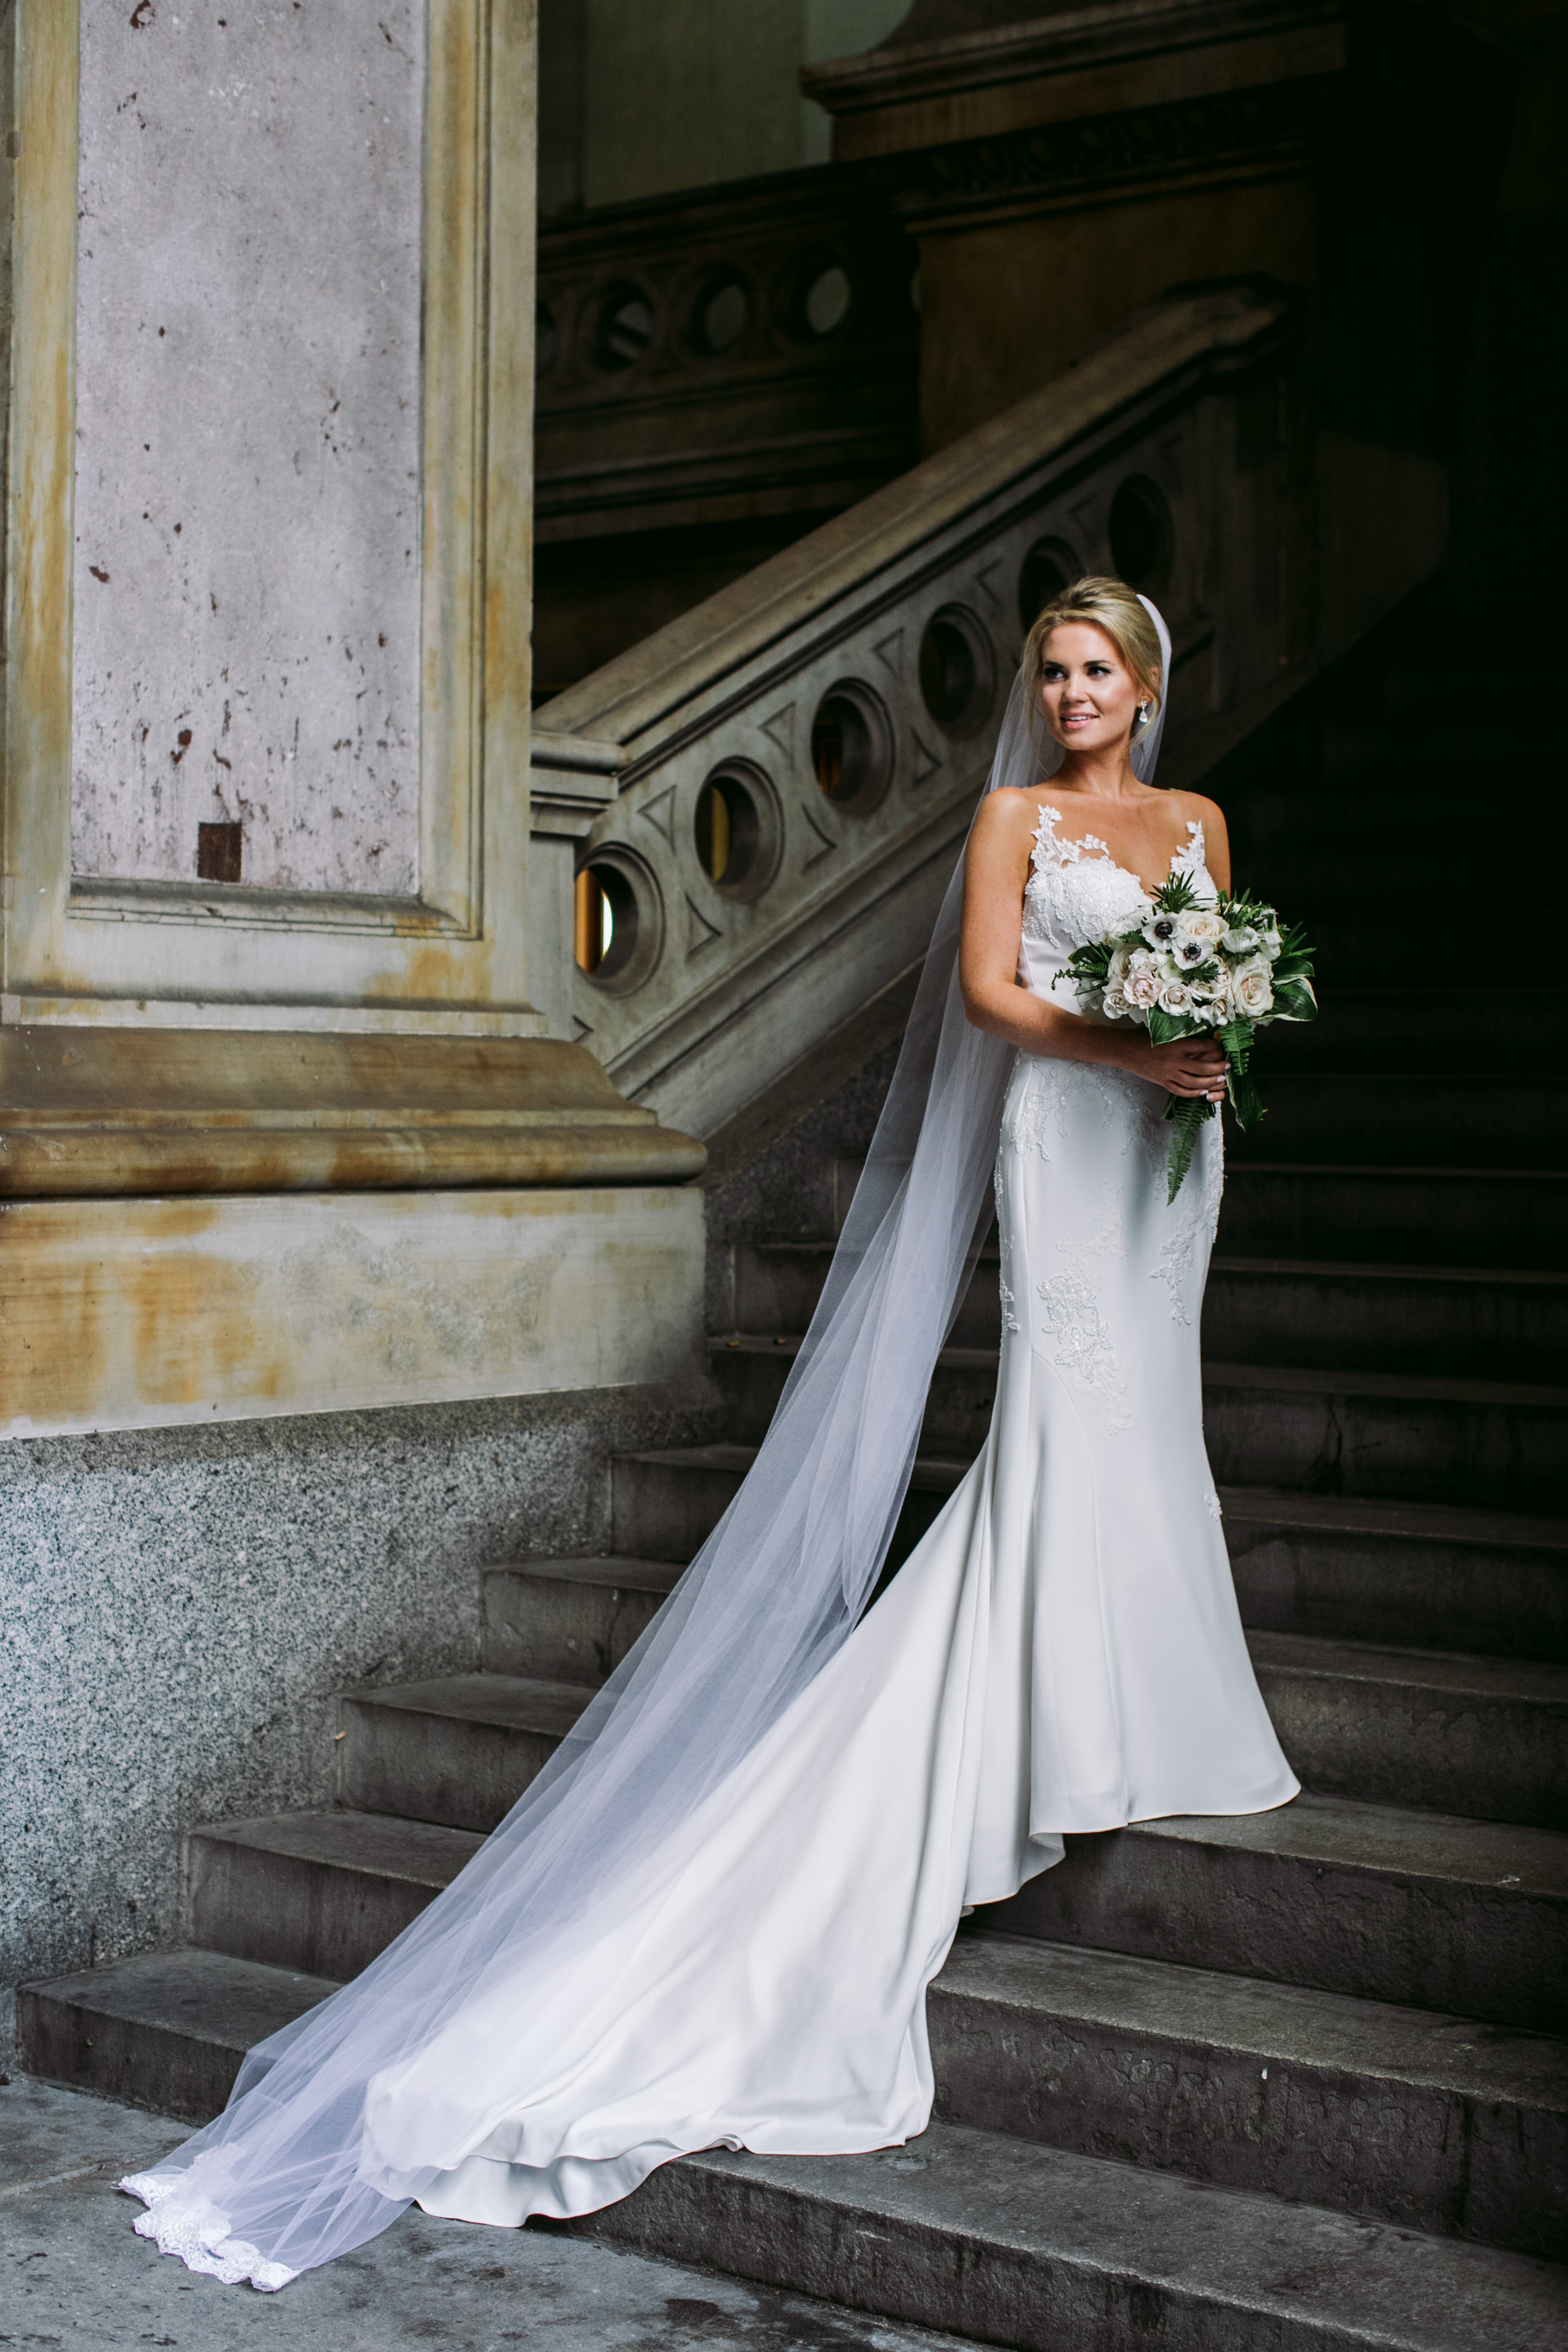 photography-wedding-weddings-natural-candid-union league-philadelphia-black tie-city hall-broad street-editorial-modern-fine-art-23.JPG